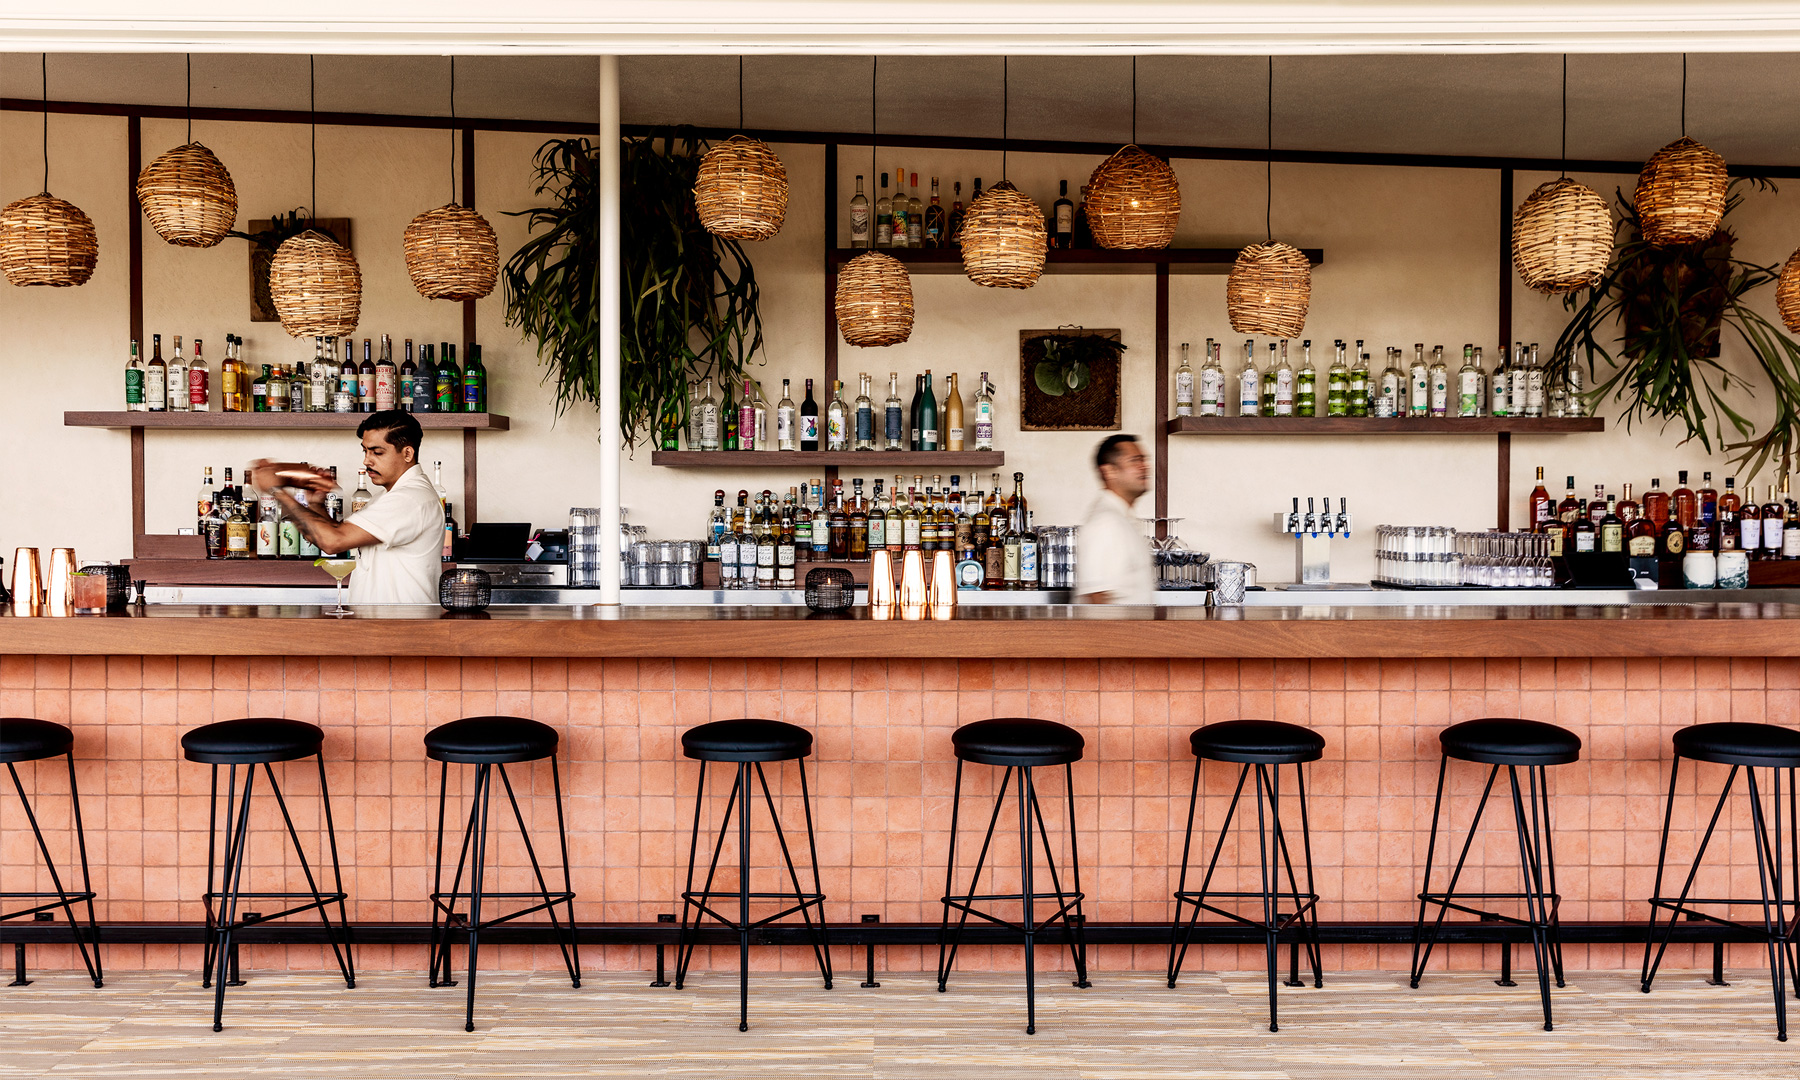 Long bar with stools and bartenders working in front of various liquor bottles